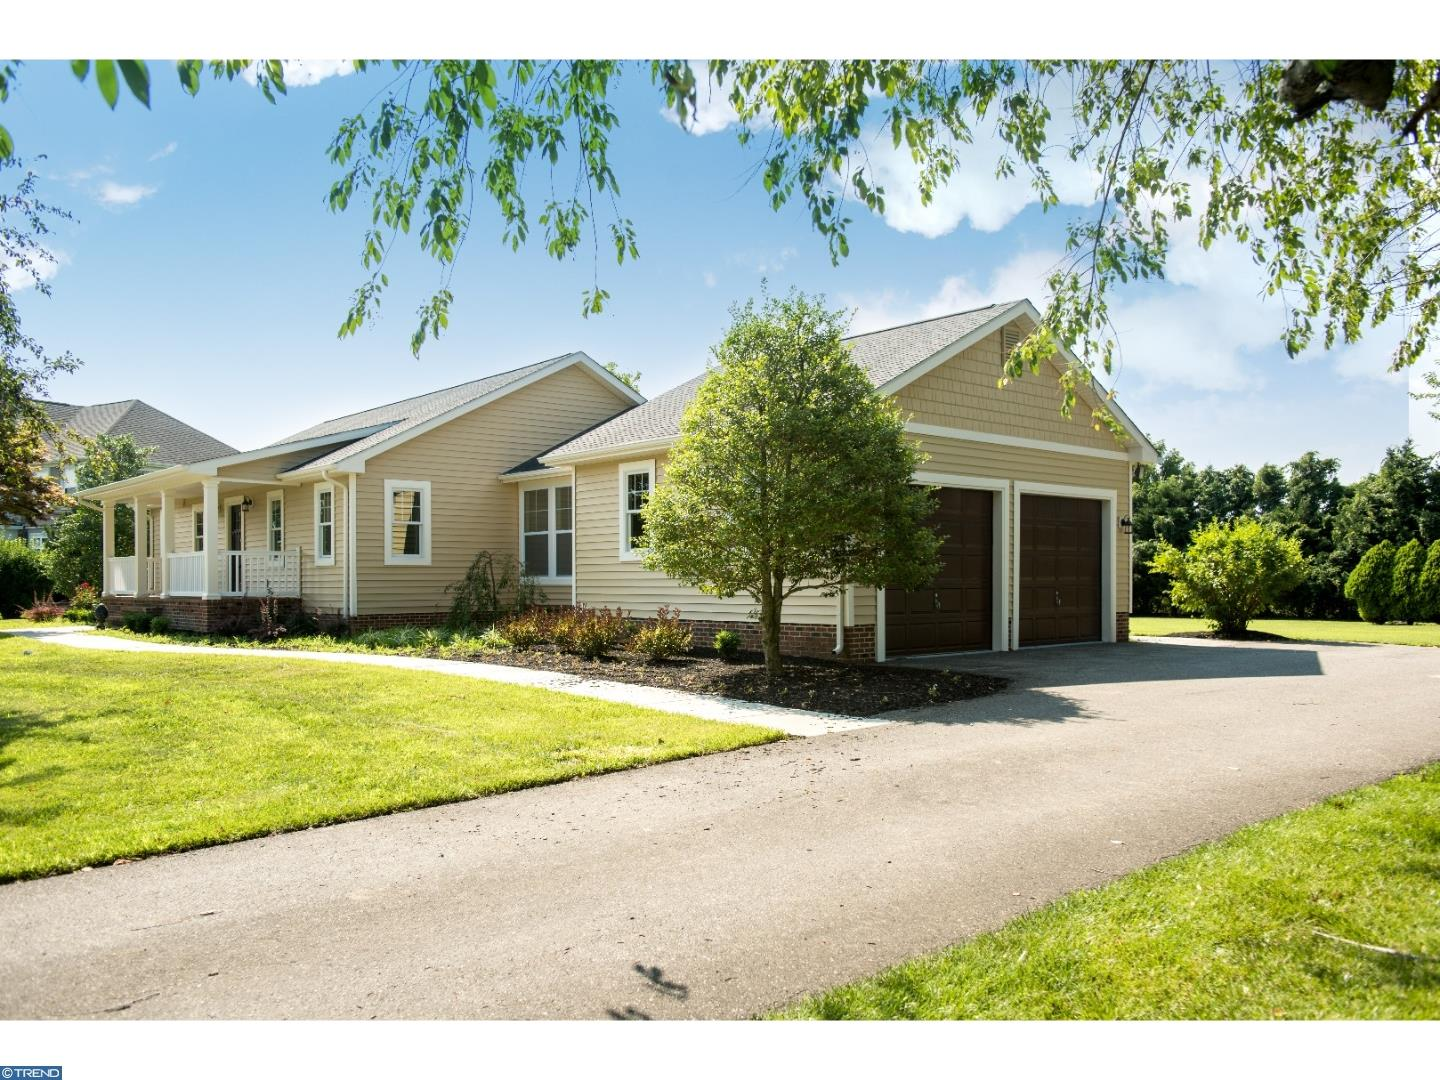 146 Bakerfield Dr Middletown DE 19709